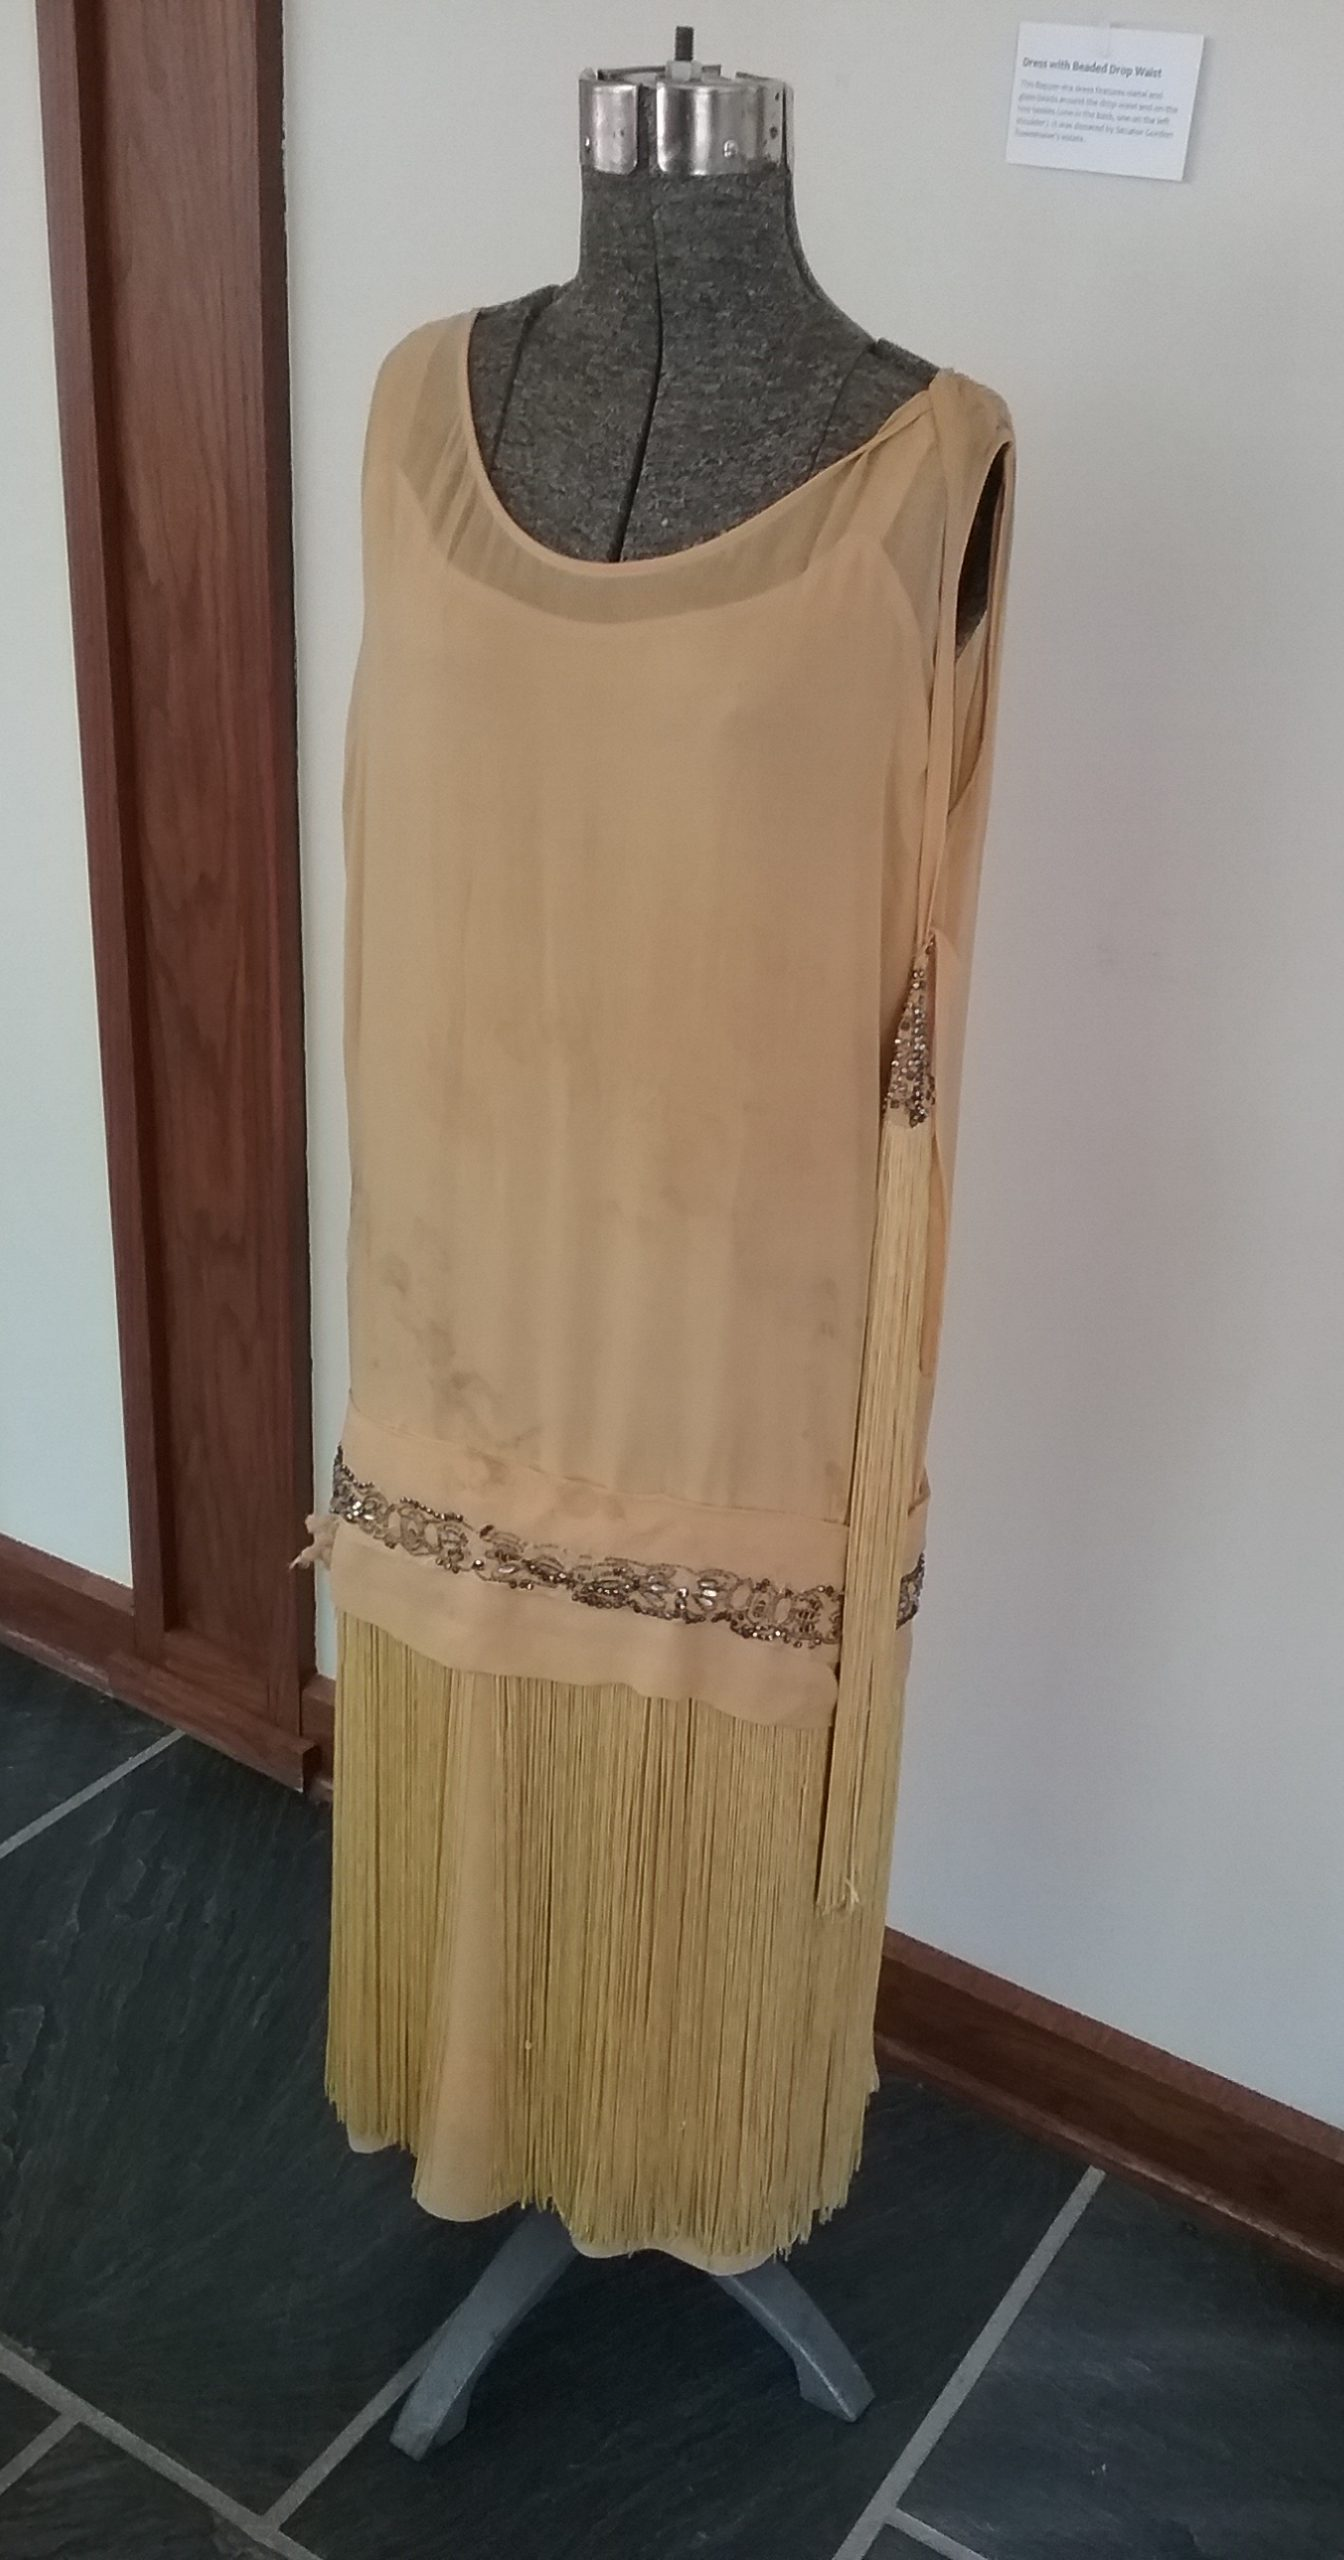 Yellow Dress with Beaded Drop Waist: This flapper-era dress features metal and glass beads around the drop waist and on the two tassels (one in the back, one on the left shoulder). It was donated by Senator Gordon Rosenmeier's estate. MCHS collections, #1994.45.51.